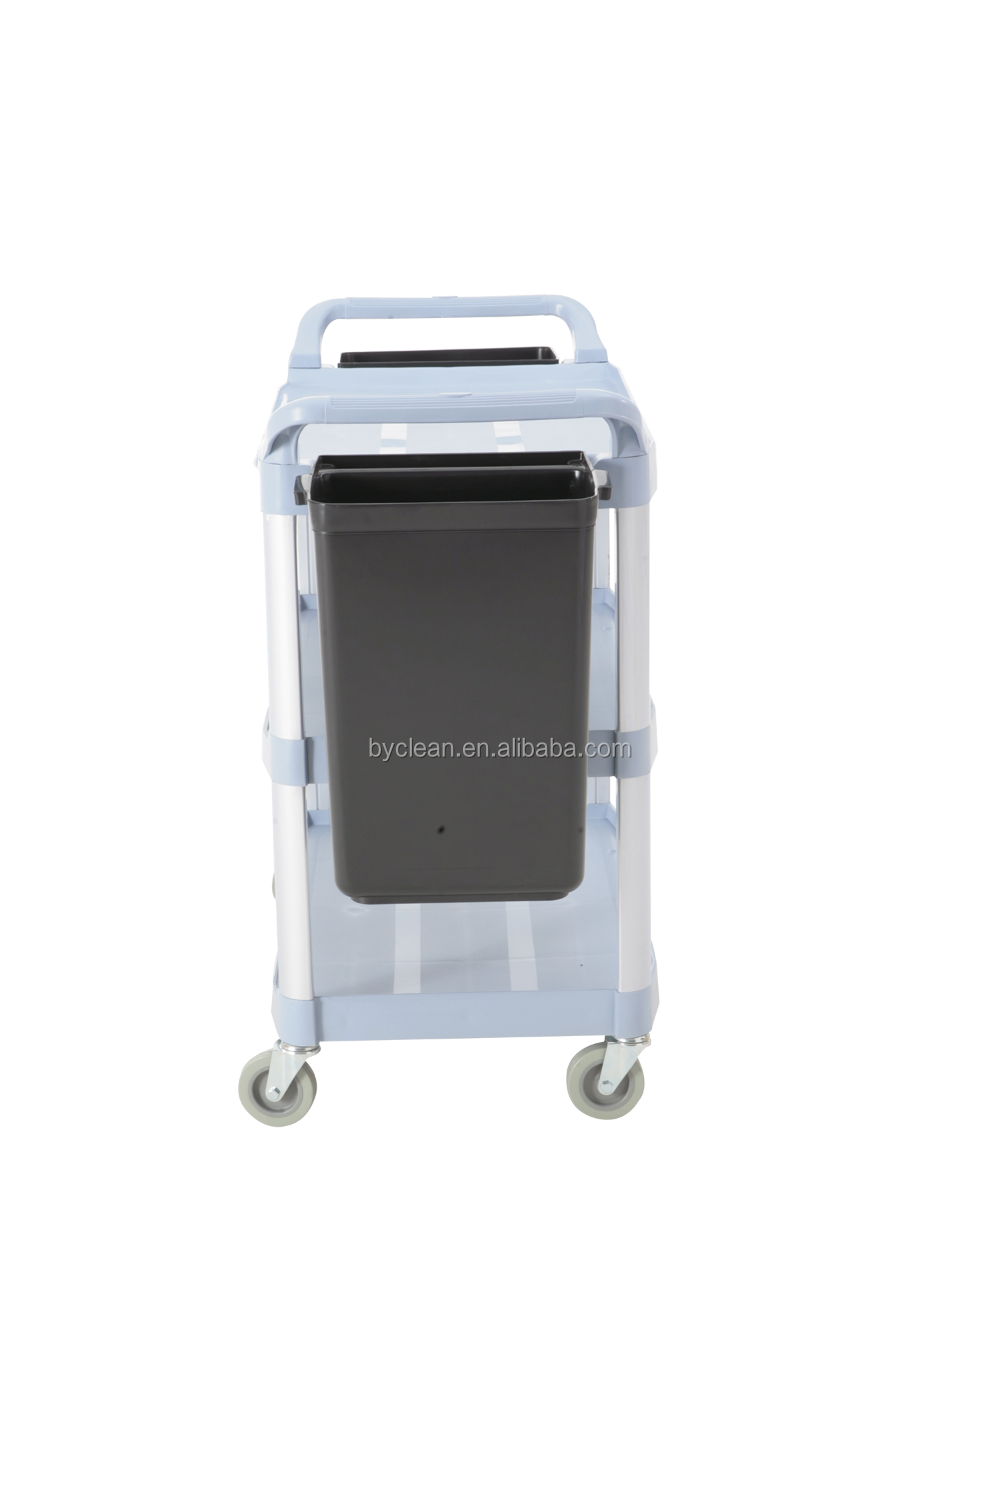 AF08161A Cleaning Trolley Utility cart with buckets(L)